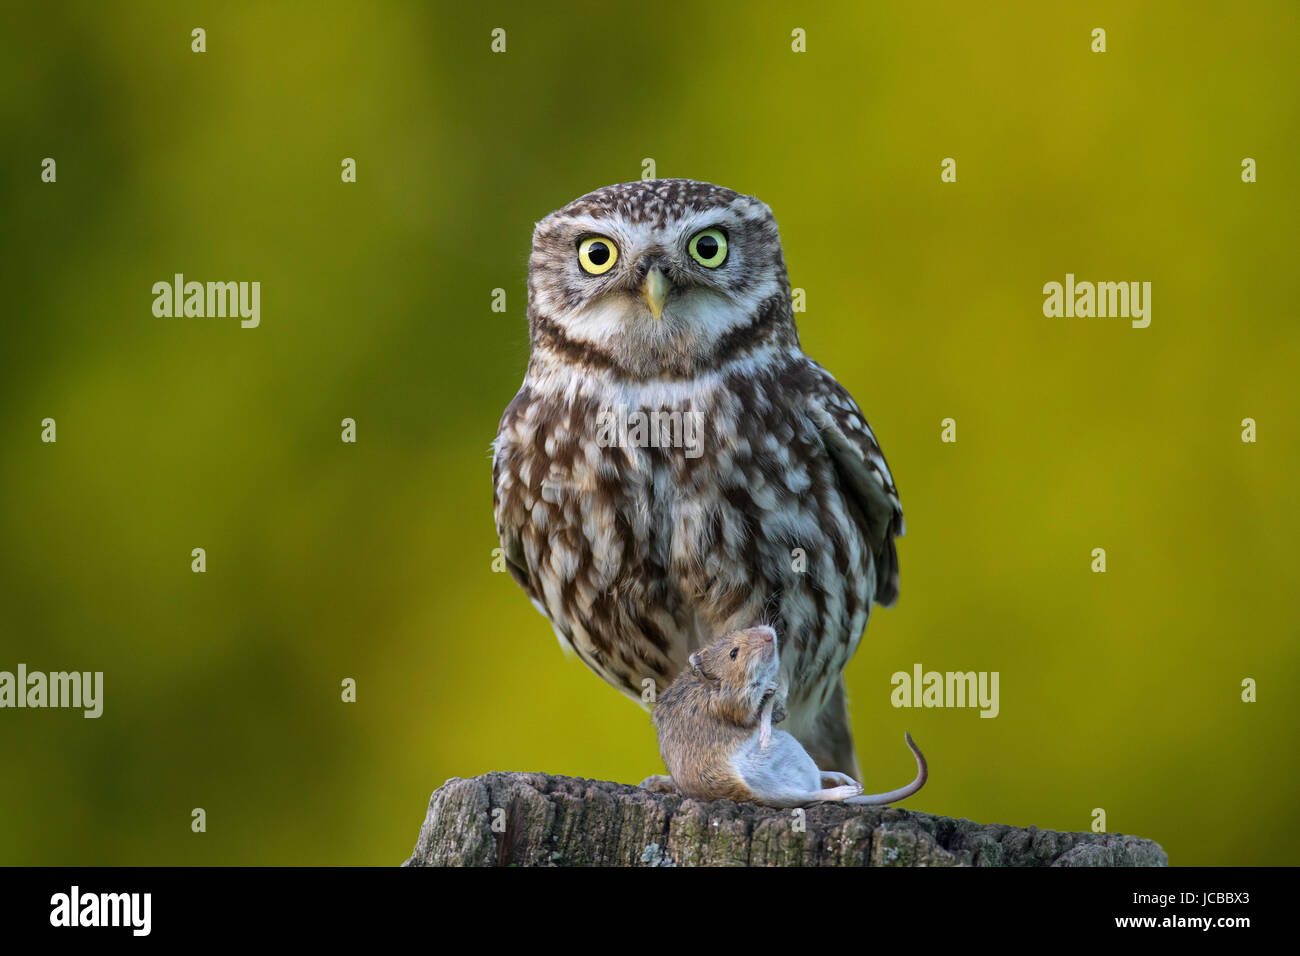 Little owl (Athene noctua) perched on weather-beaten wooden fence post with caught mouse prey - Stock Image